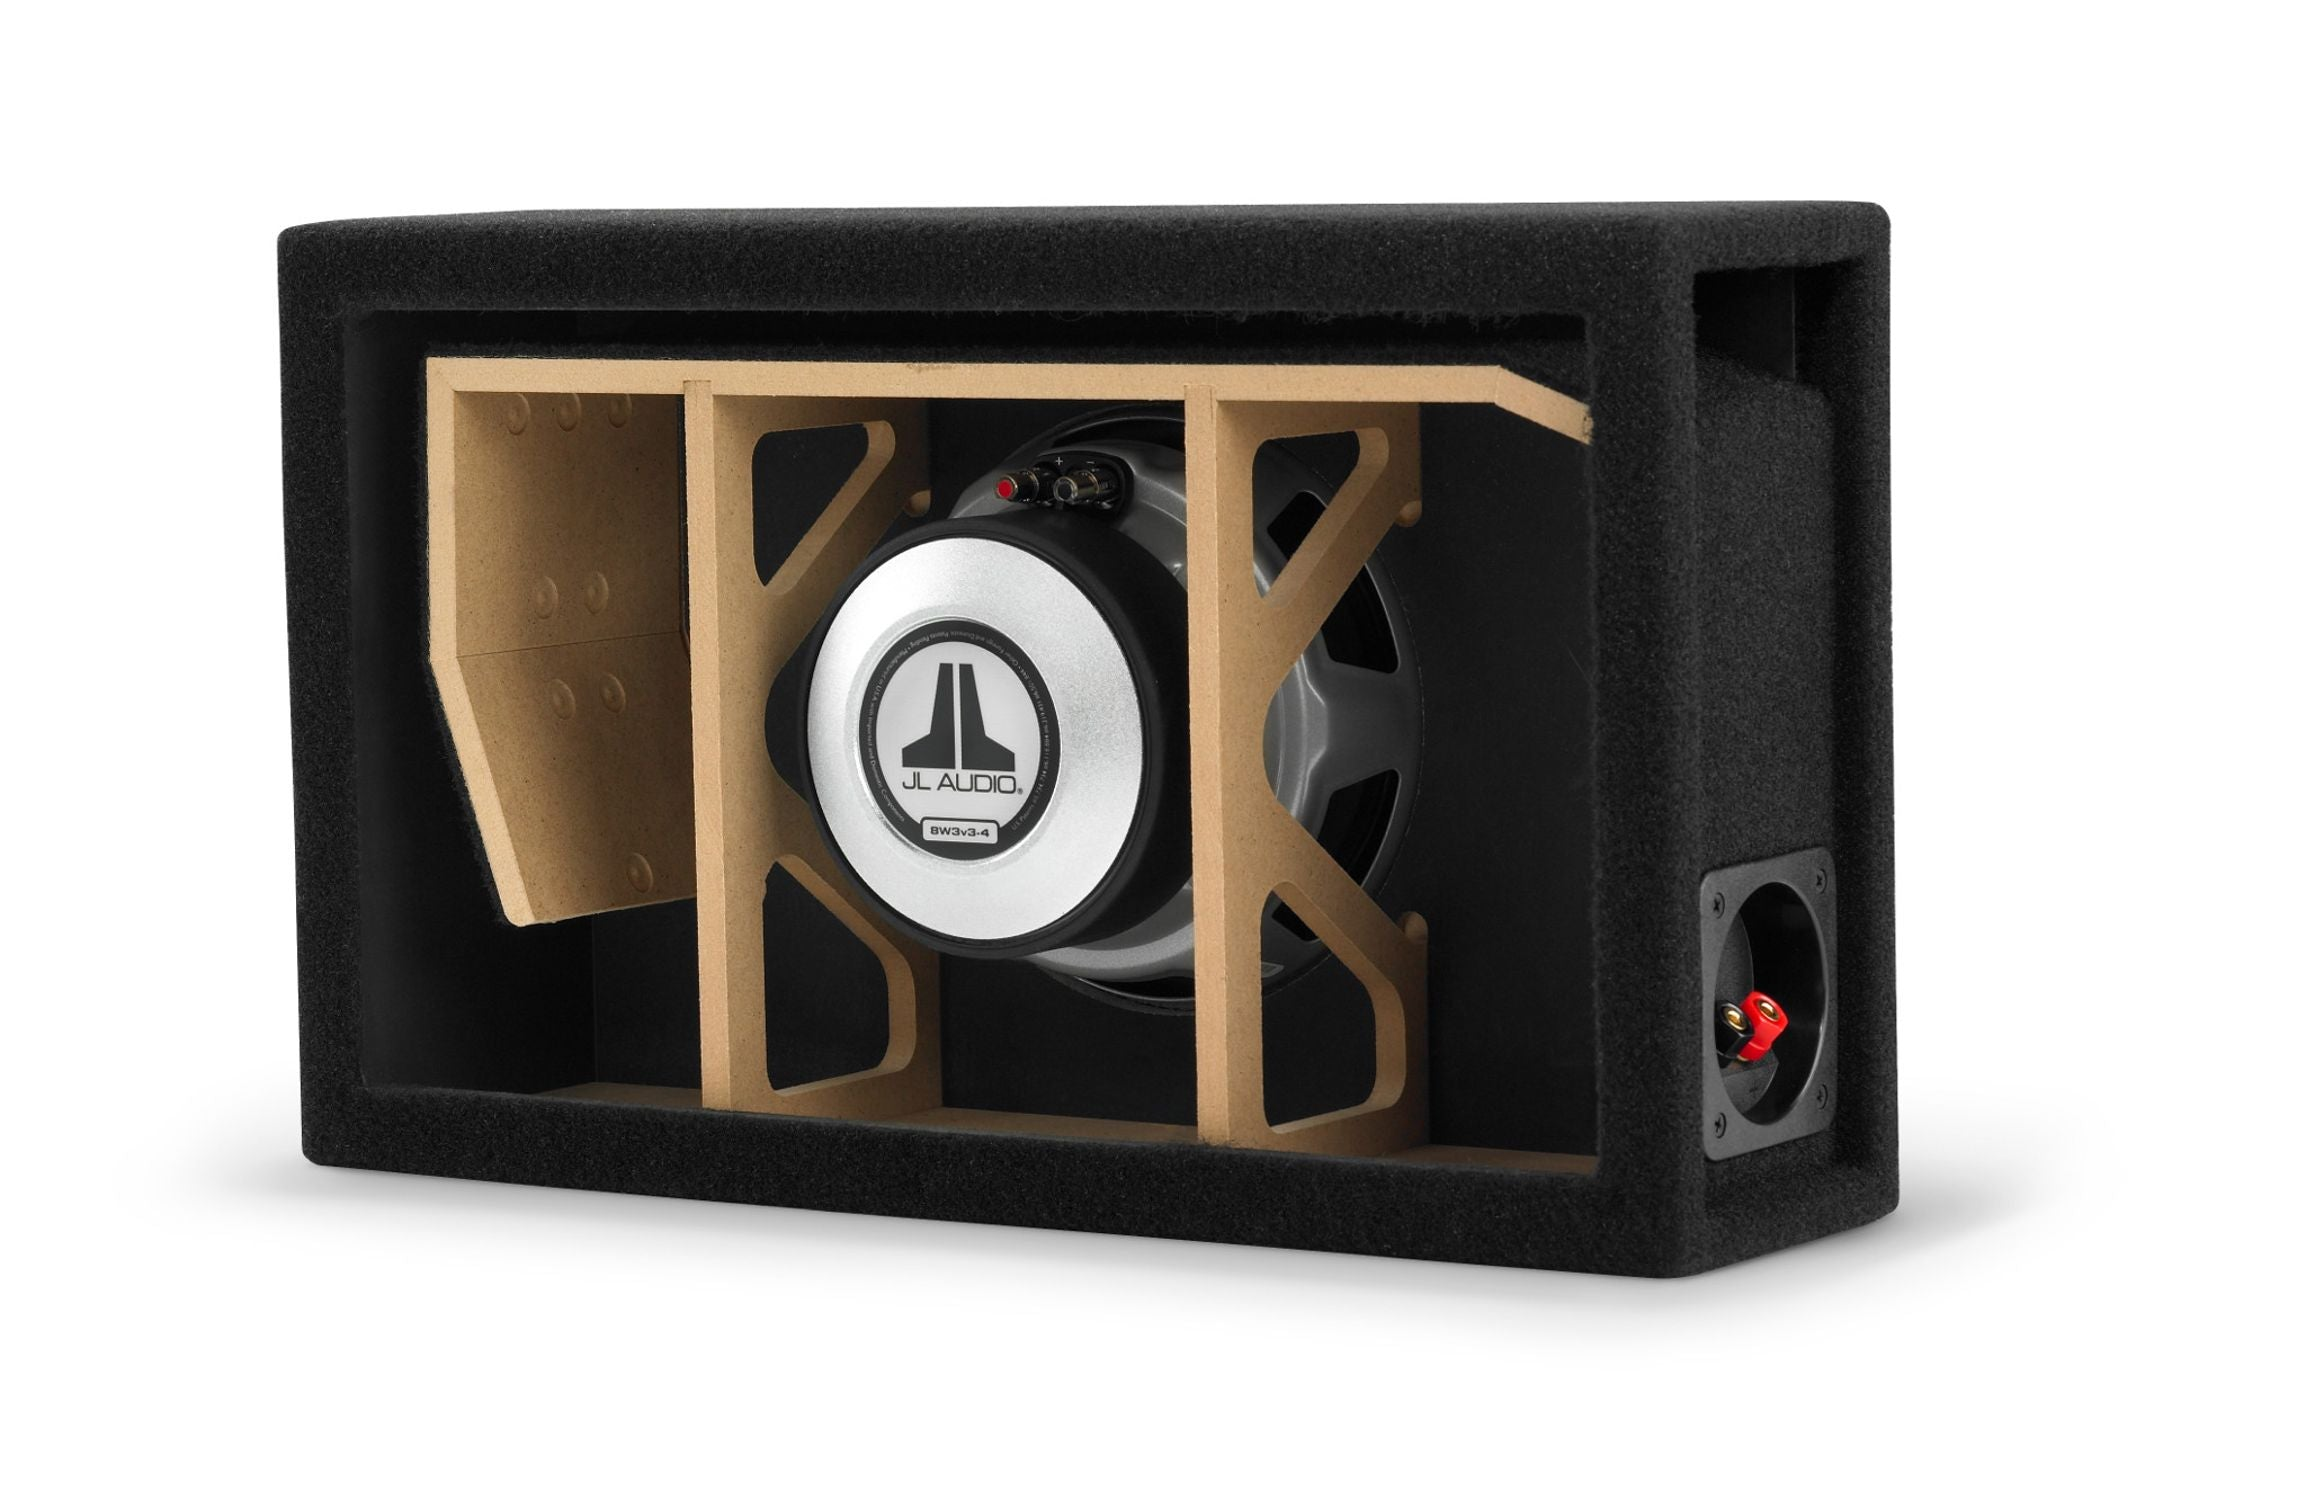 Cutaway of CP108LG-W3v3 Enclosed Subwoofer Showing Port and Internal Bracing